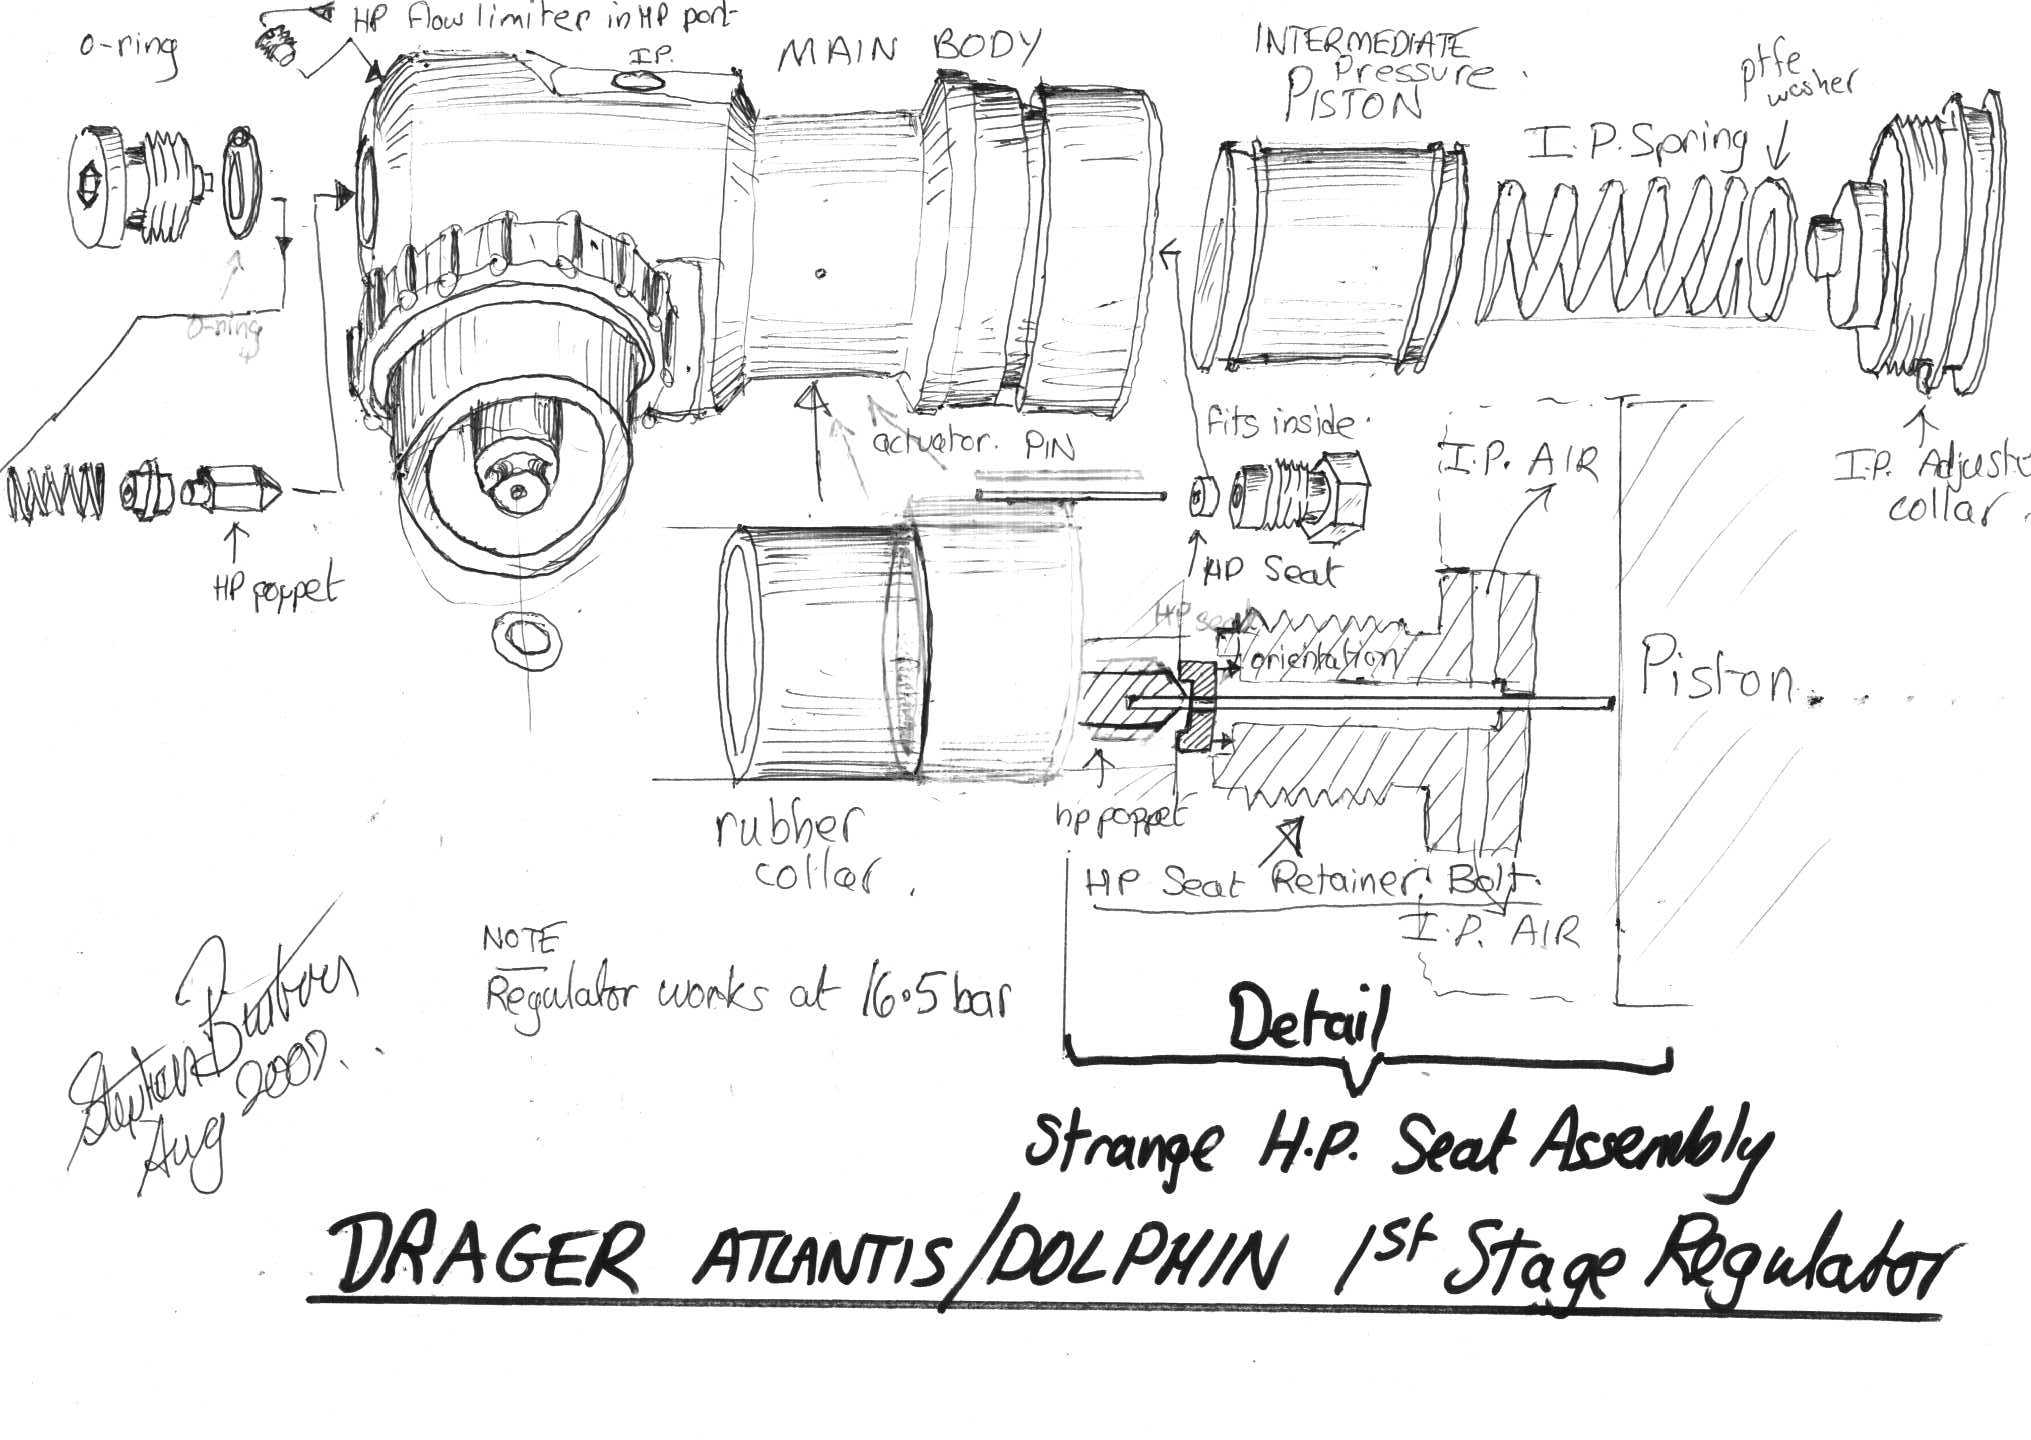 wiring diagram for drager   25 wiring diagram images